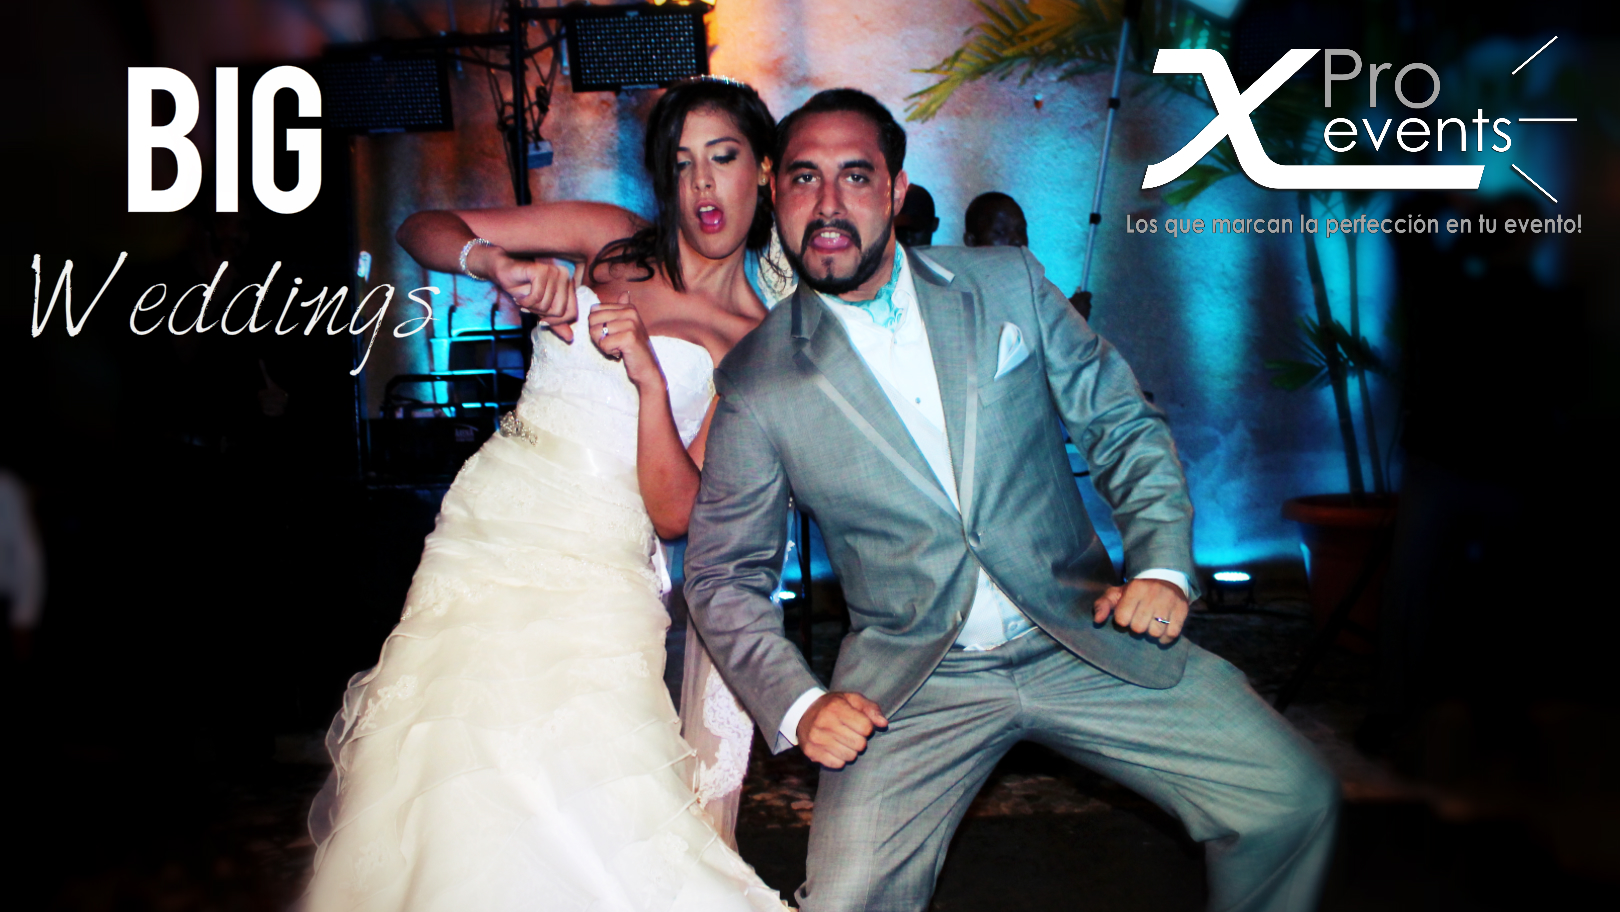 www.Xproevents.com - Big Weddings.jpg